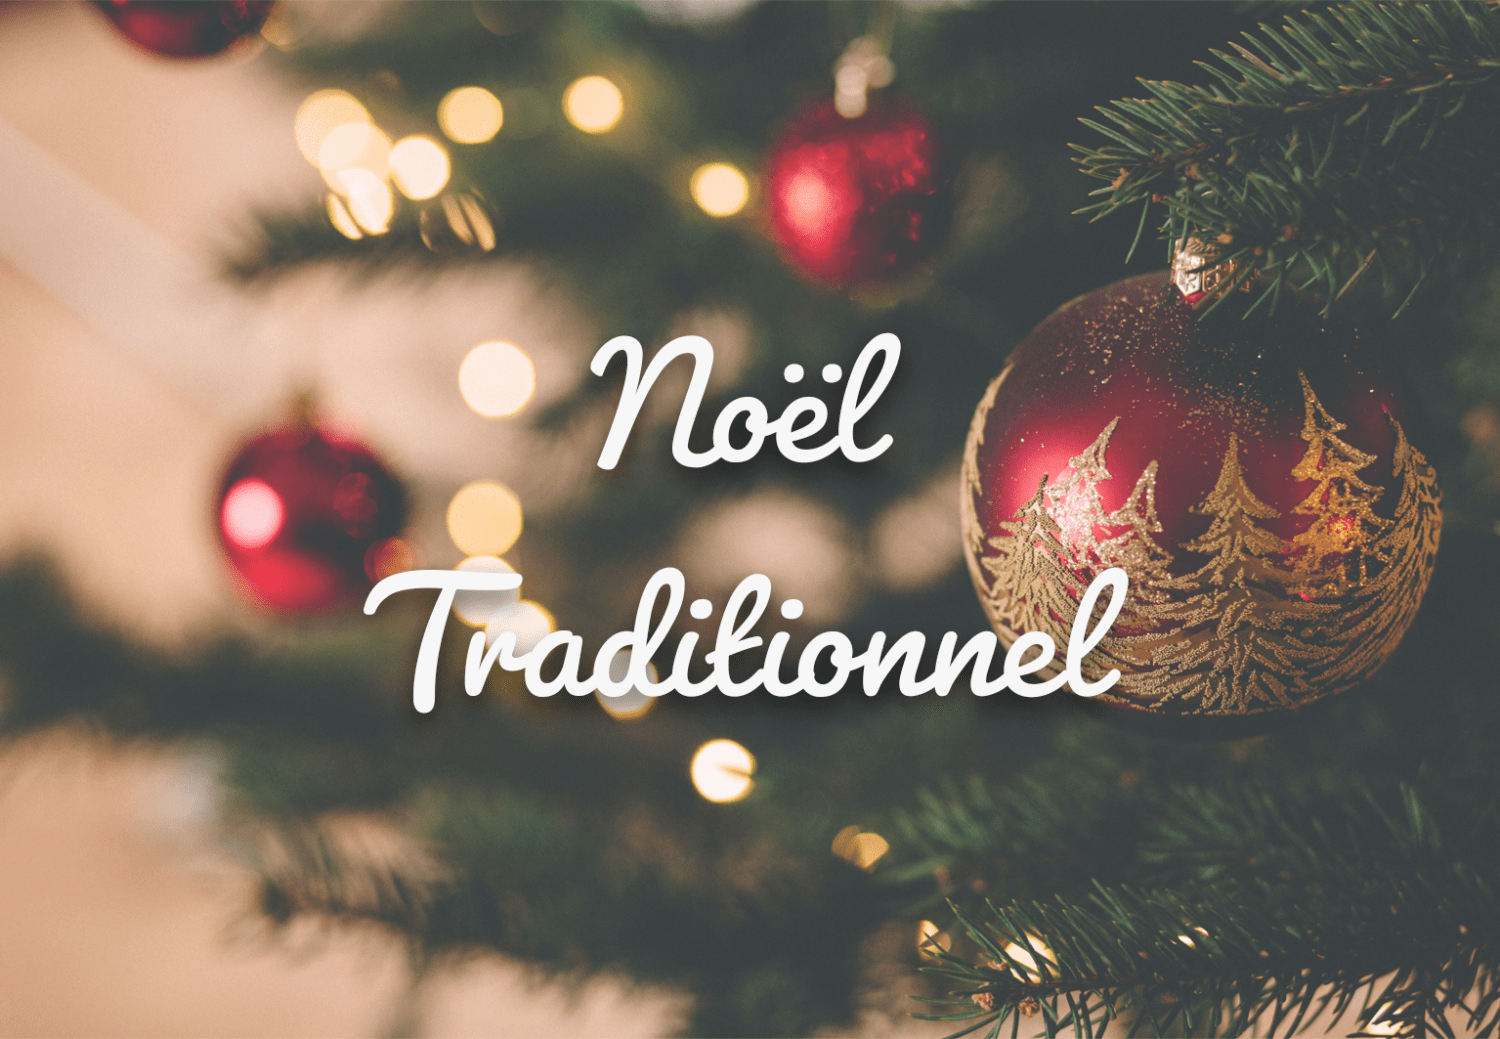 noël traditionnel arbres de noël